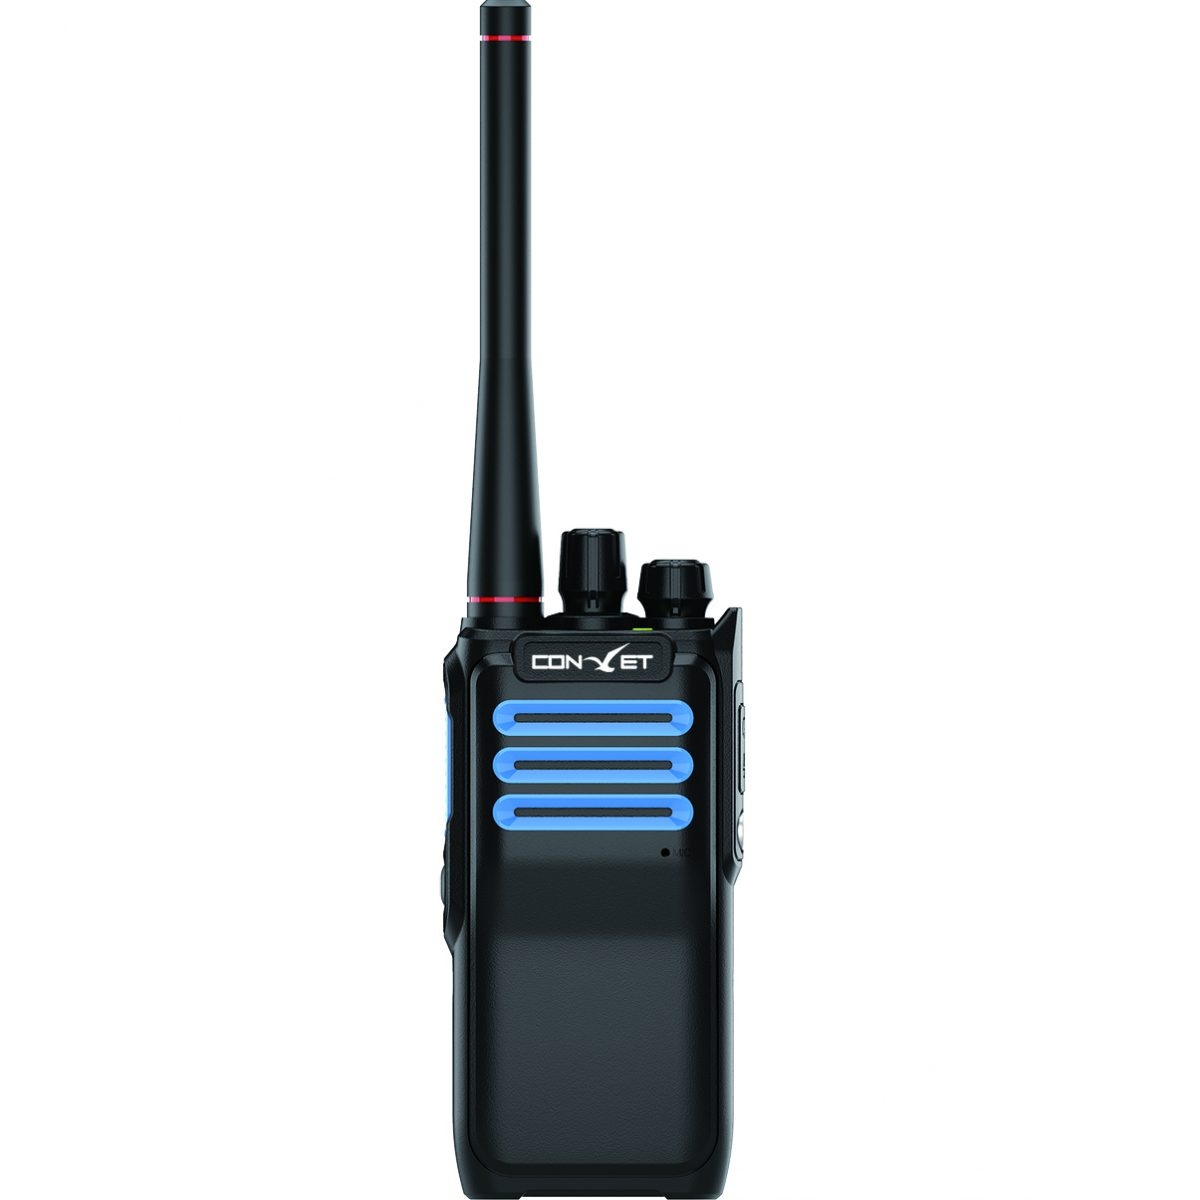 Contalk CTET-6703 Waterproof UHF Radio IP67 waterproof level, best and cheap choice for water or rain communication